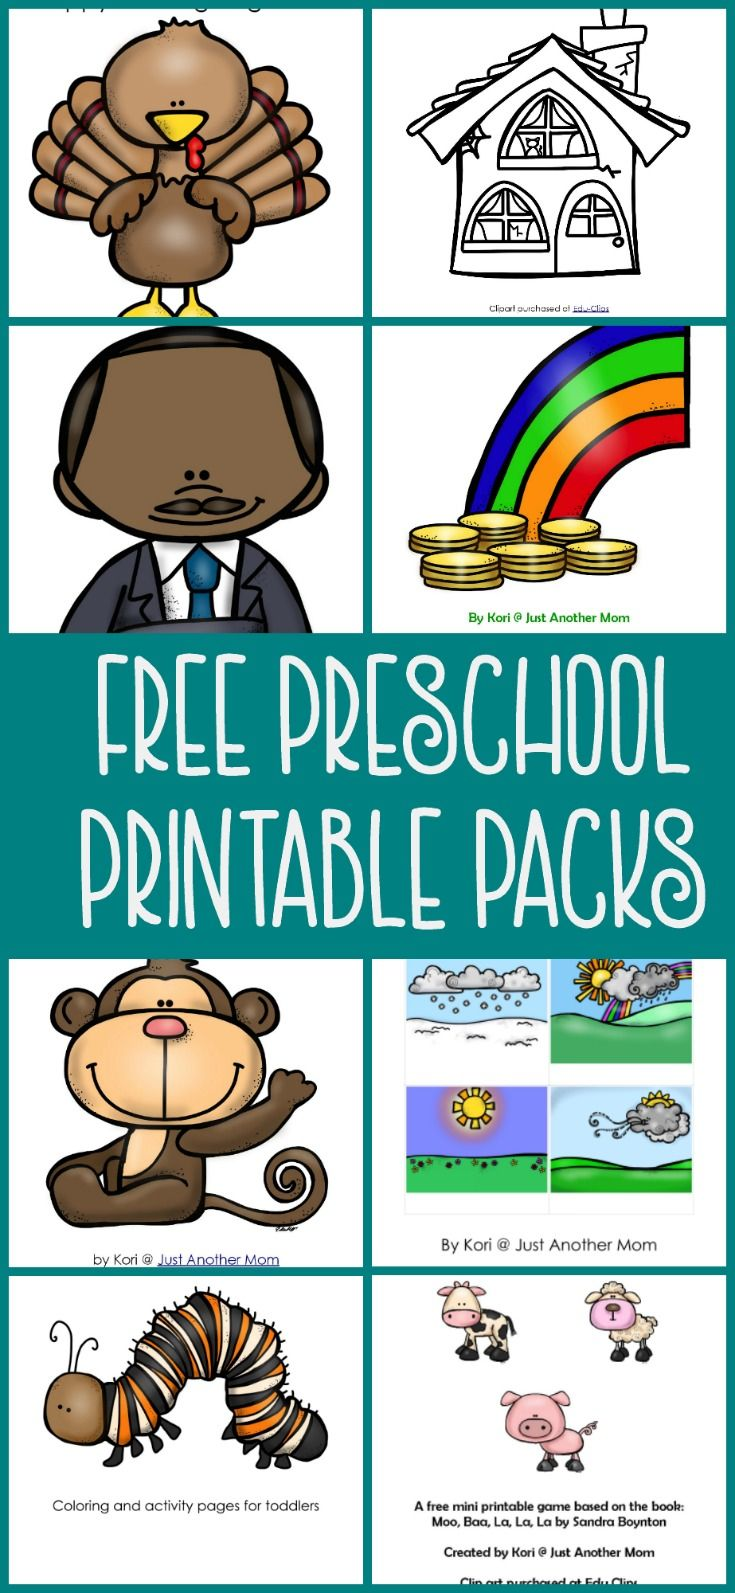 Are you planning to start tot school or preschool at home? Maybe you're in need of some resources for your home daycare? Be sure to check out these free preschool printable packs.